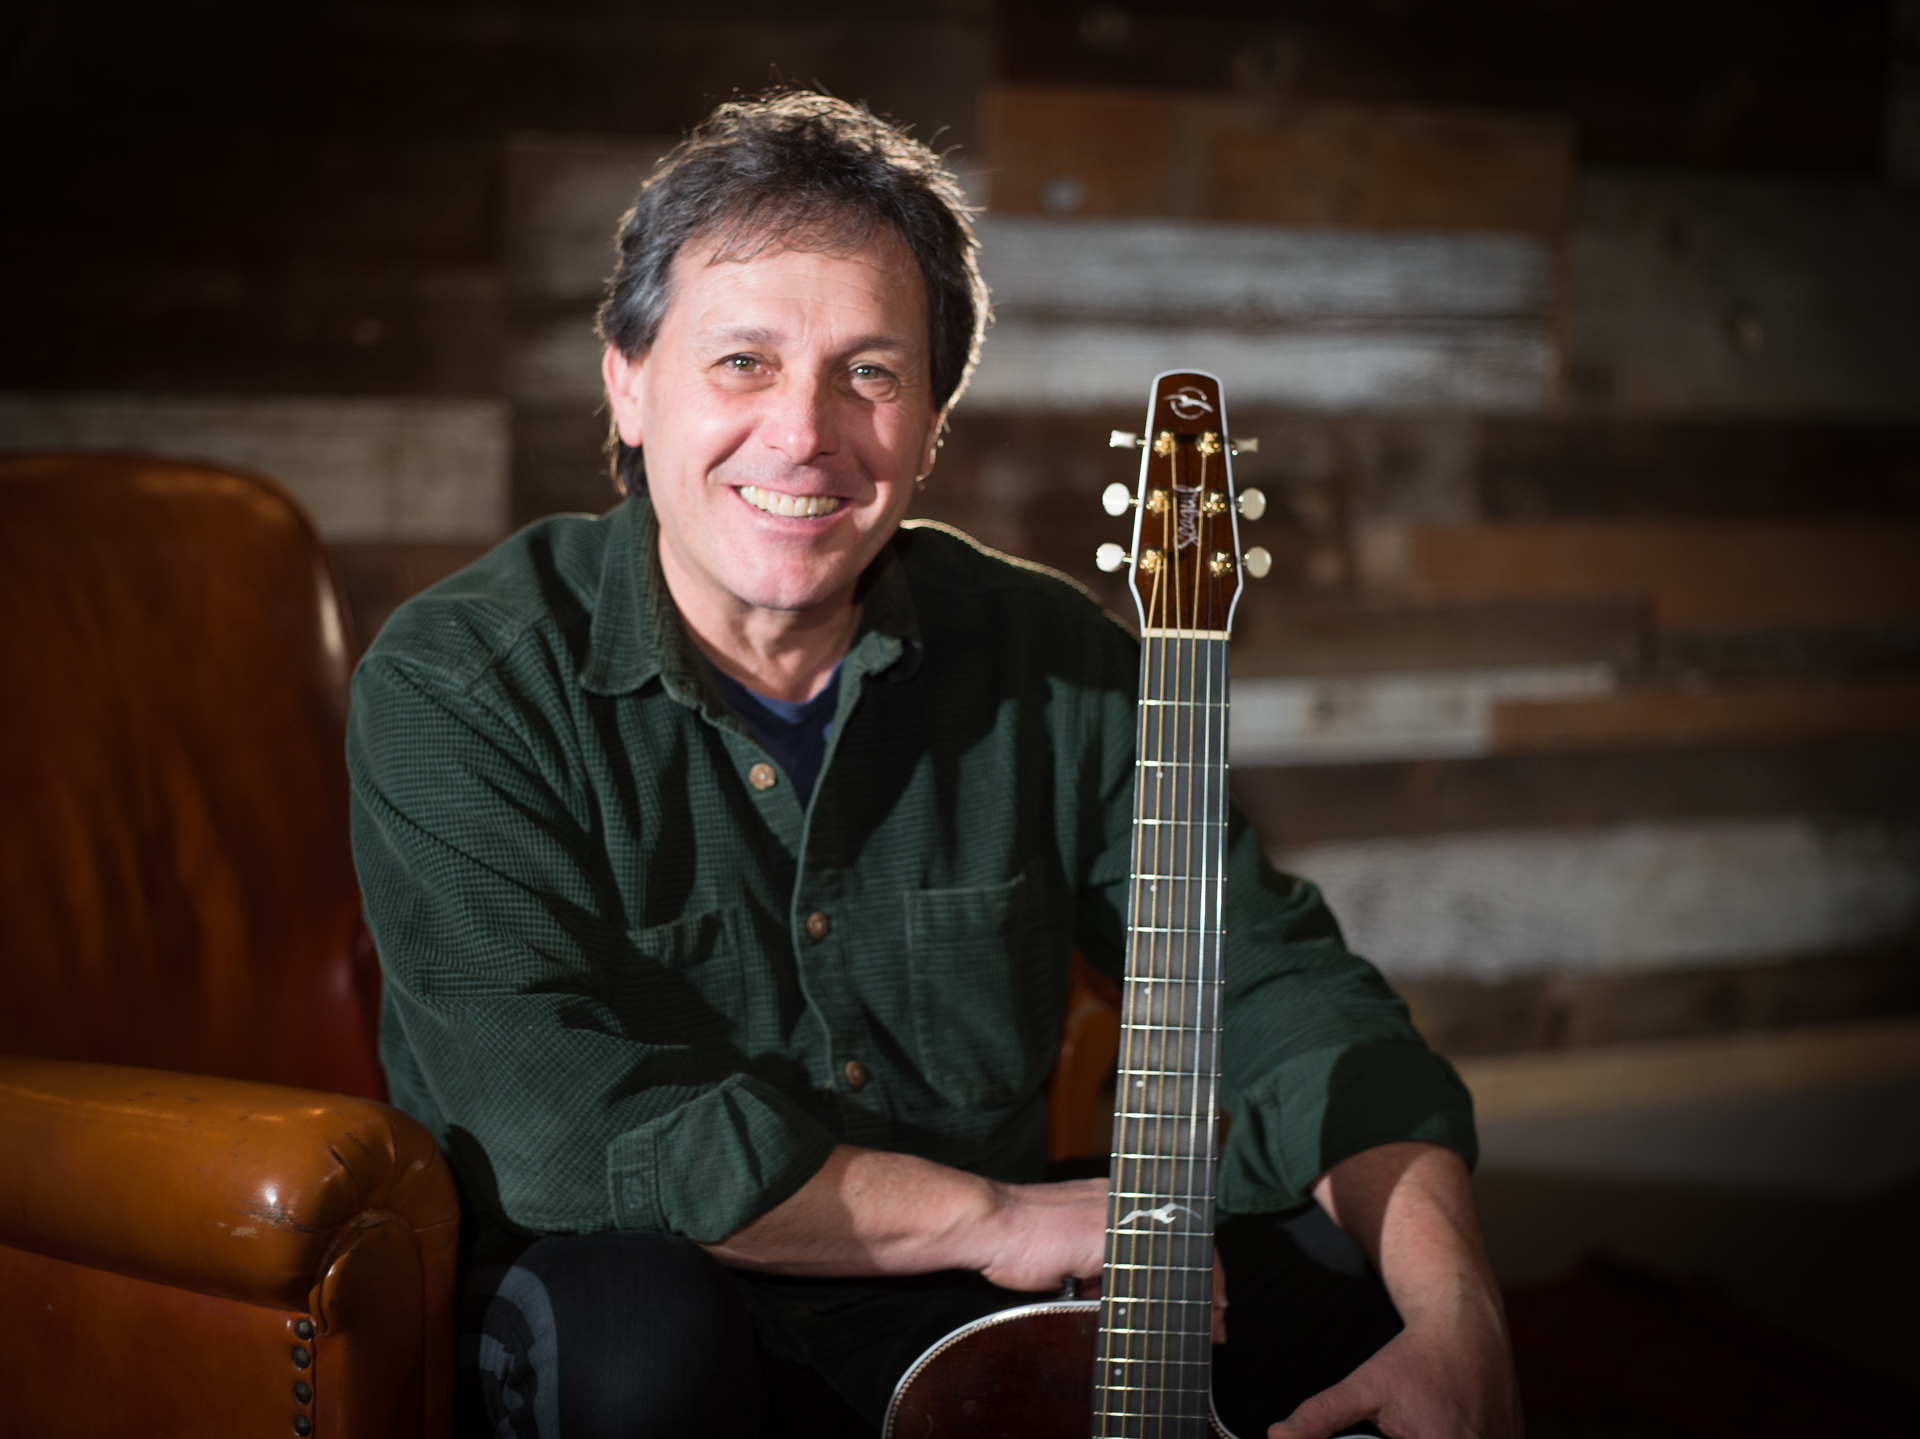 International Performer, Master Guitarist, and Co-Creator of Music World Retreats.